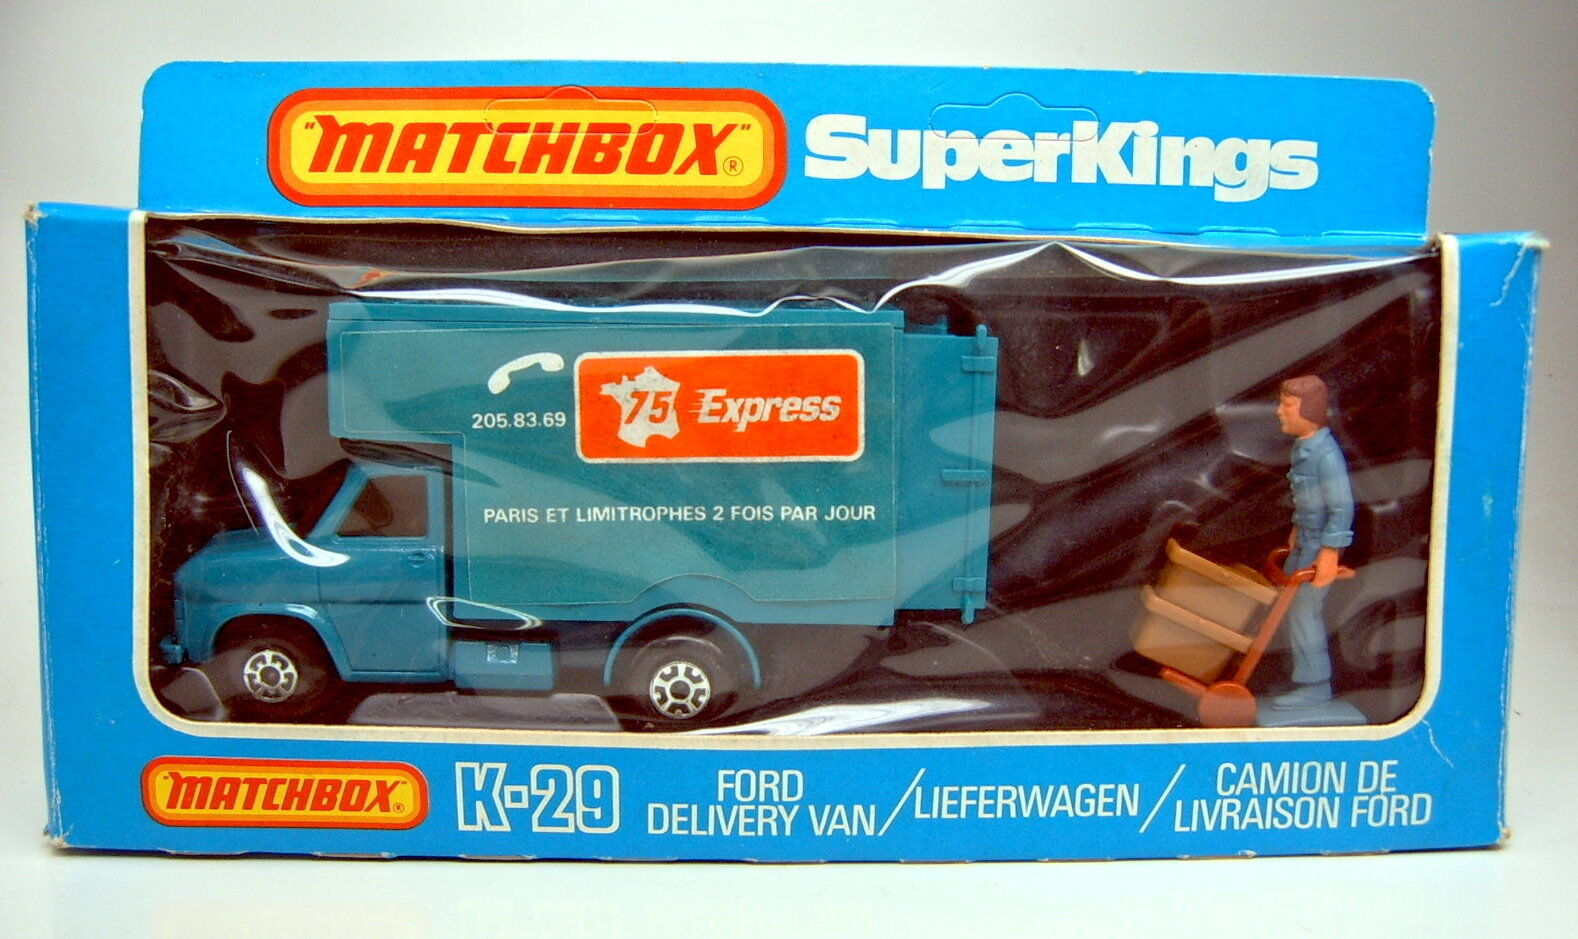 Matchbox Superking k-29b Ford Delivery Van  75 Express  Promotional Model with Box